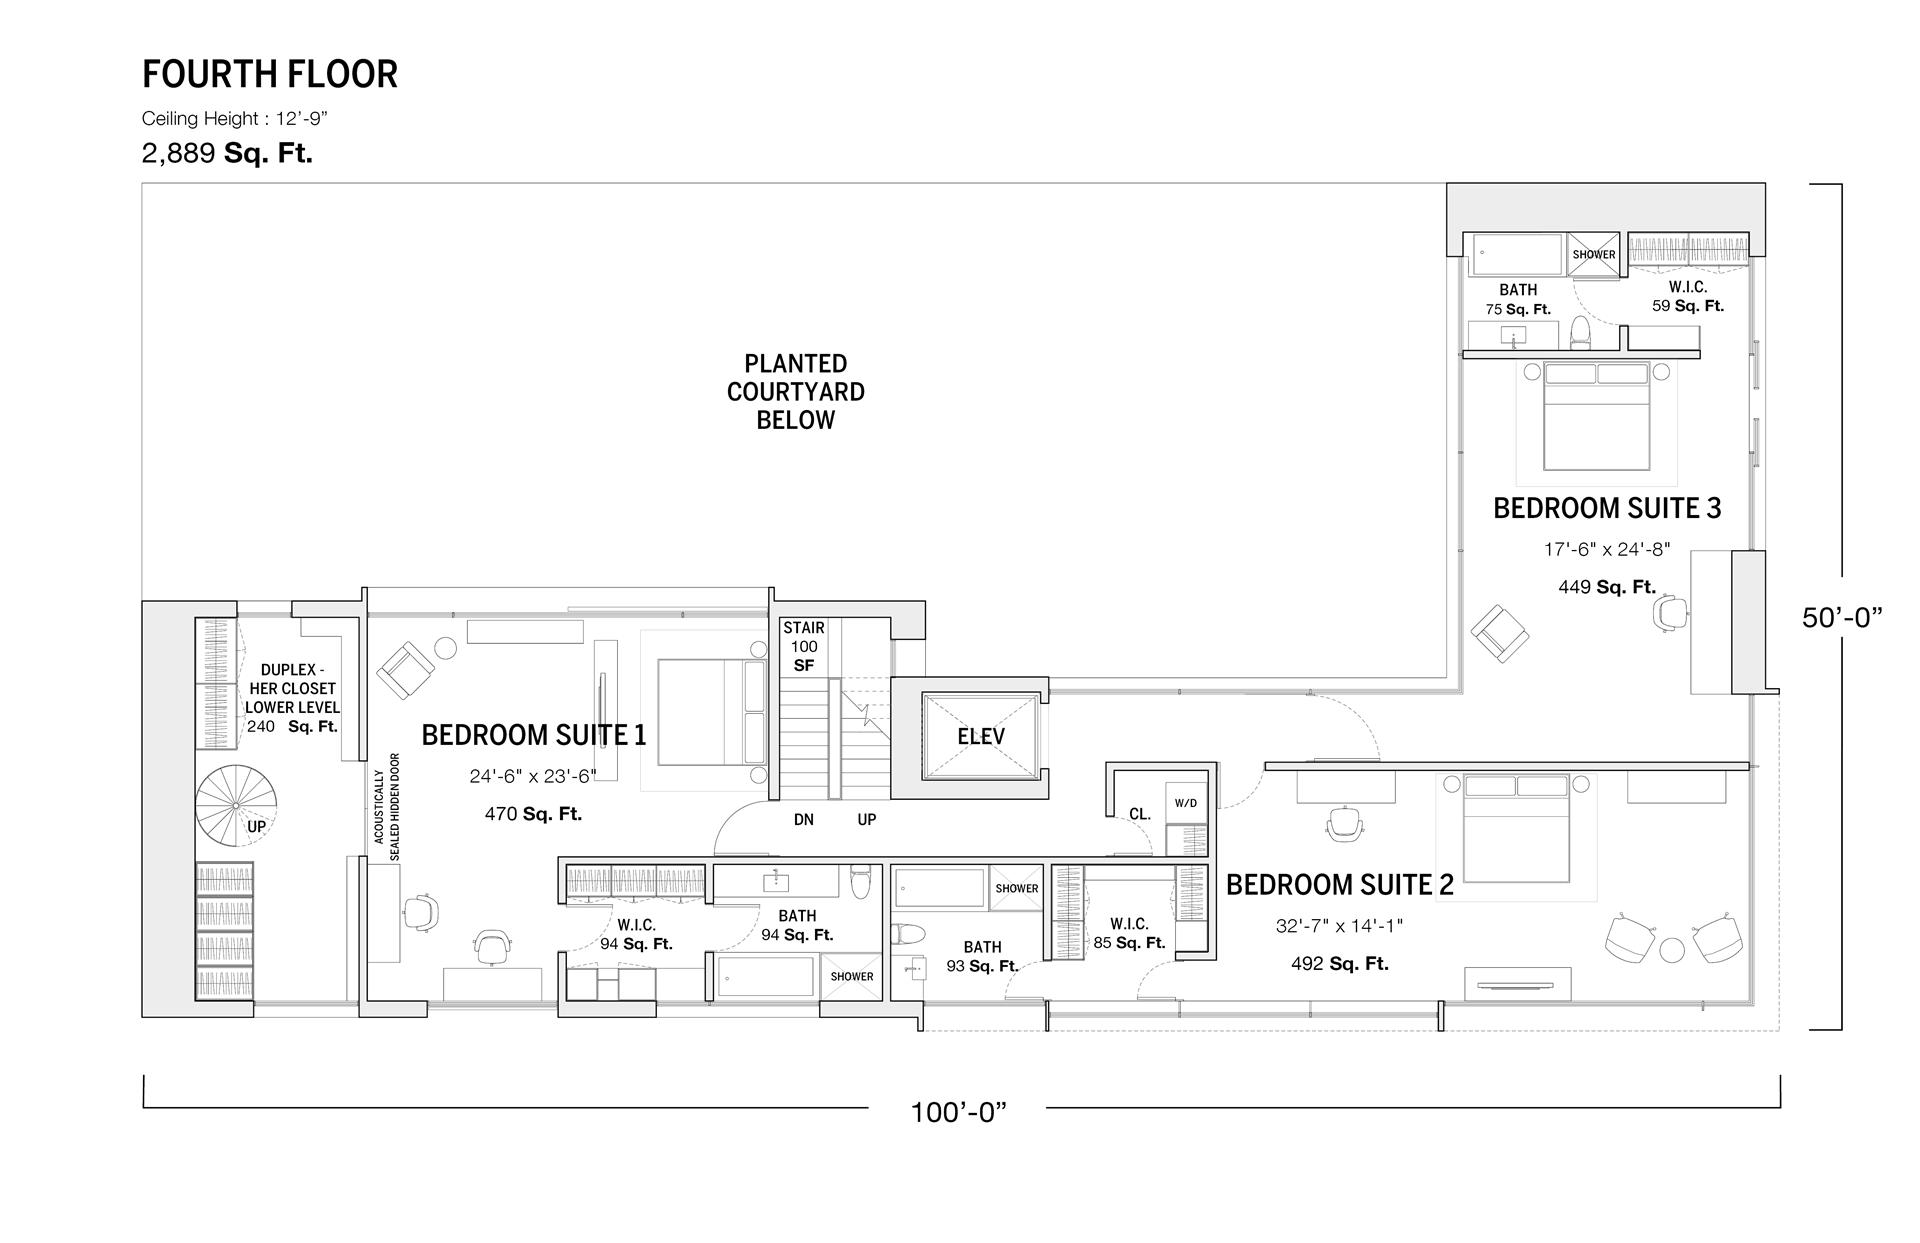 Floor plan of 11 Hubert St - TriBeCa, New York